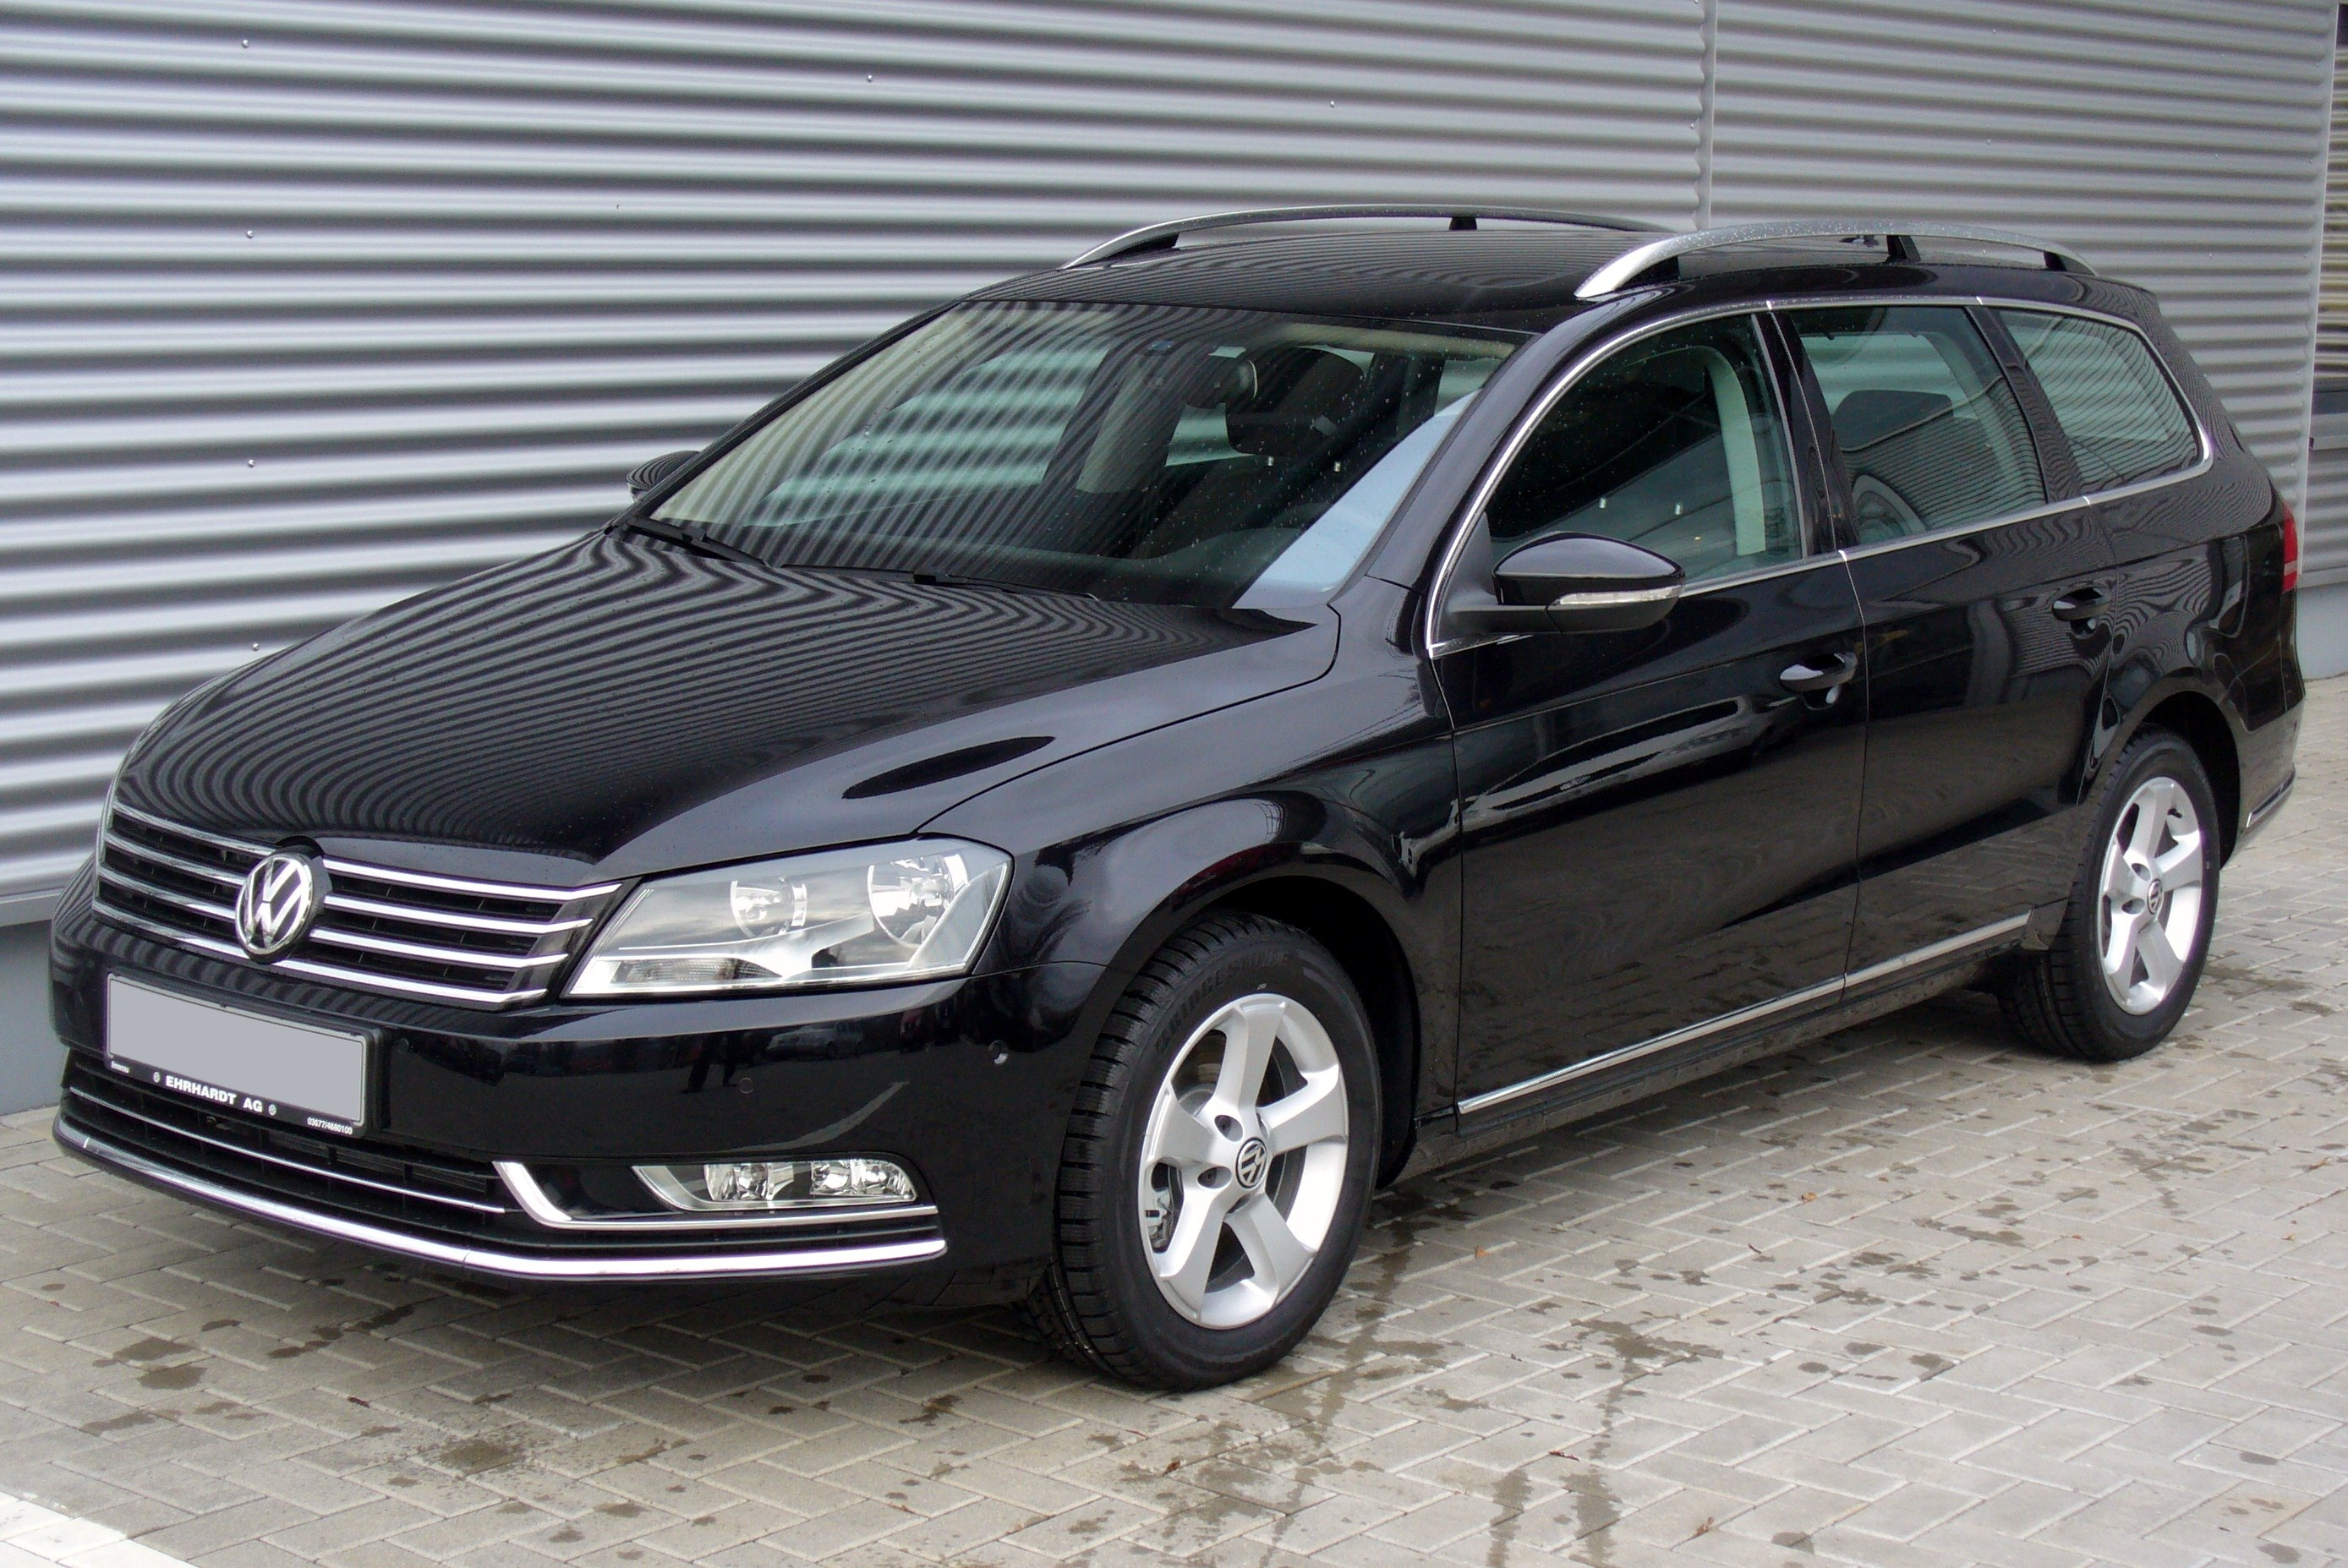 volkswagen passat b7 wikiwand. Black Bedroom Furniture Sets. Home Design Ideas